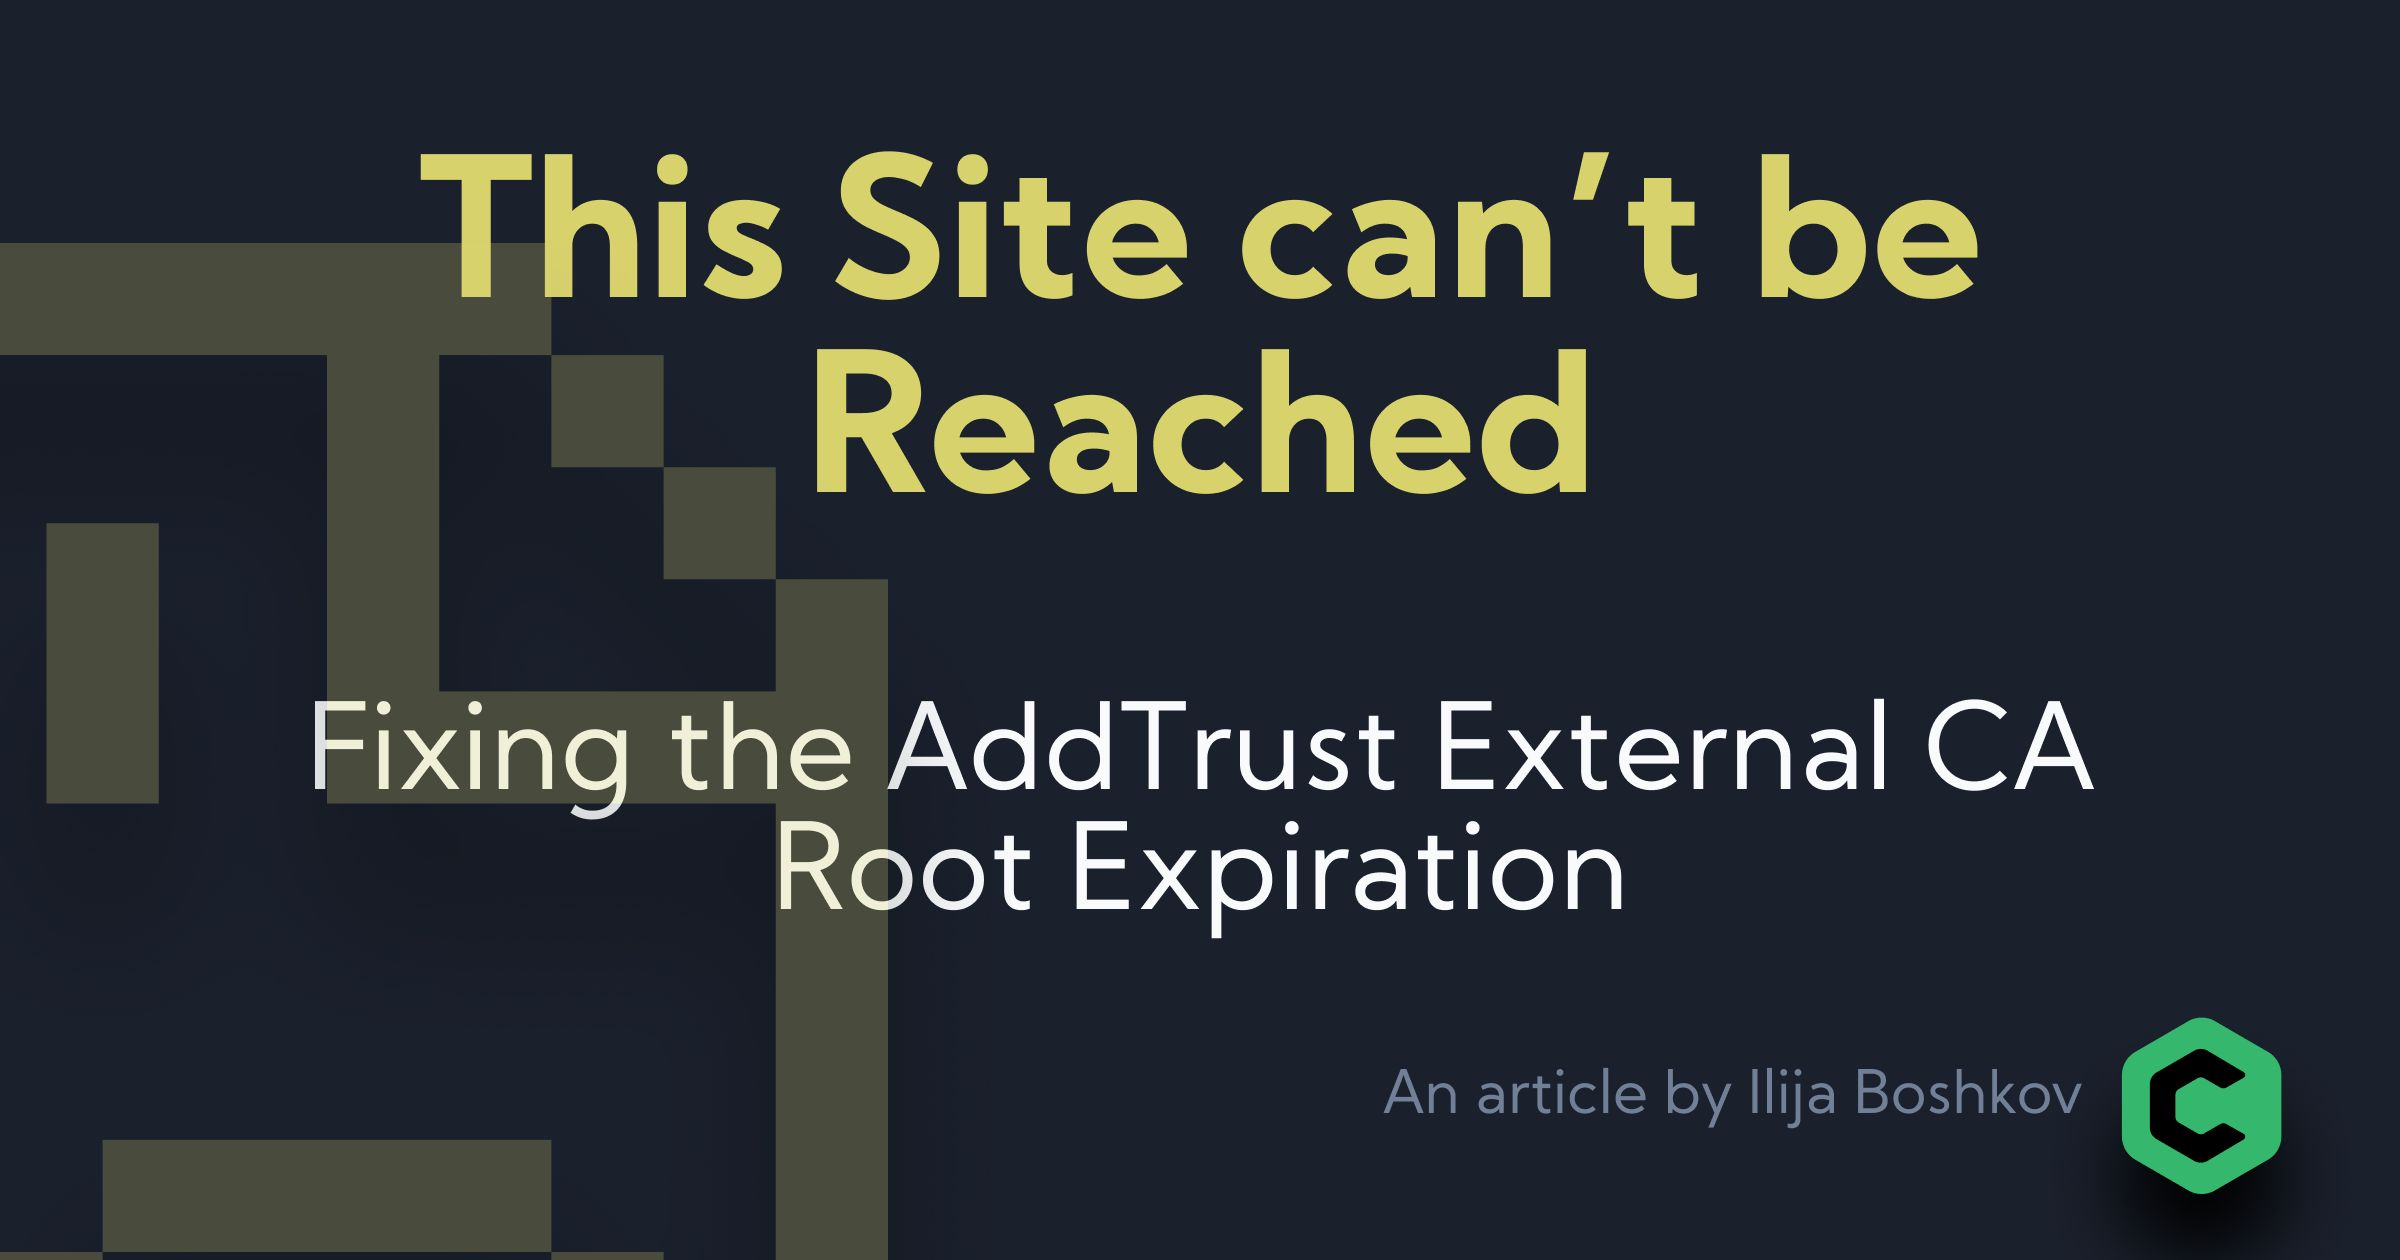 /fixing-root-certificate-expiration-errors-in-curl-916c31jq feature image